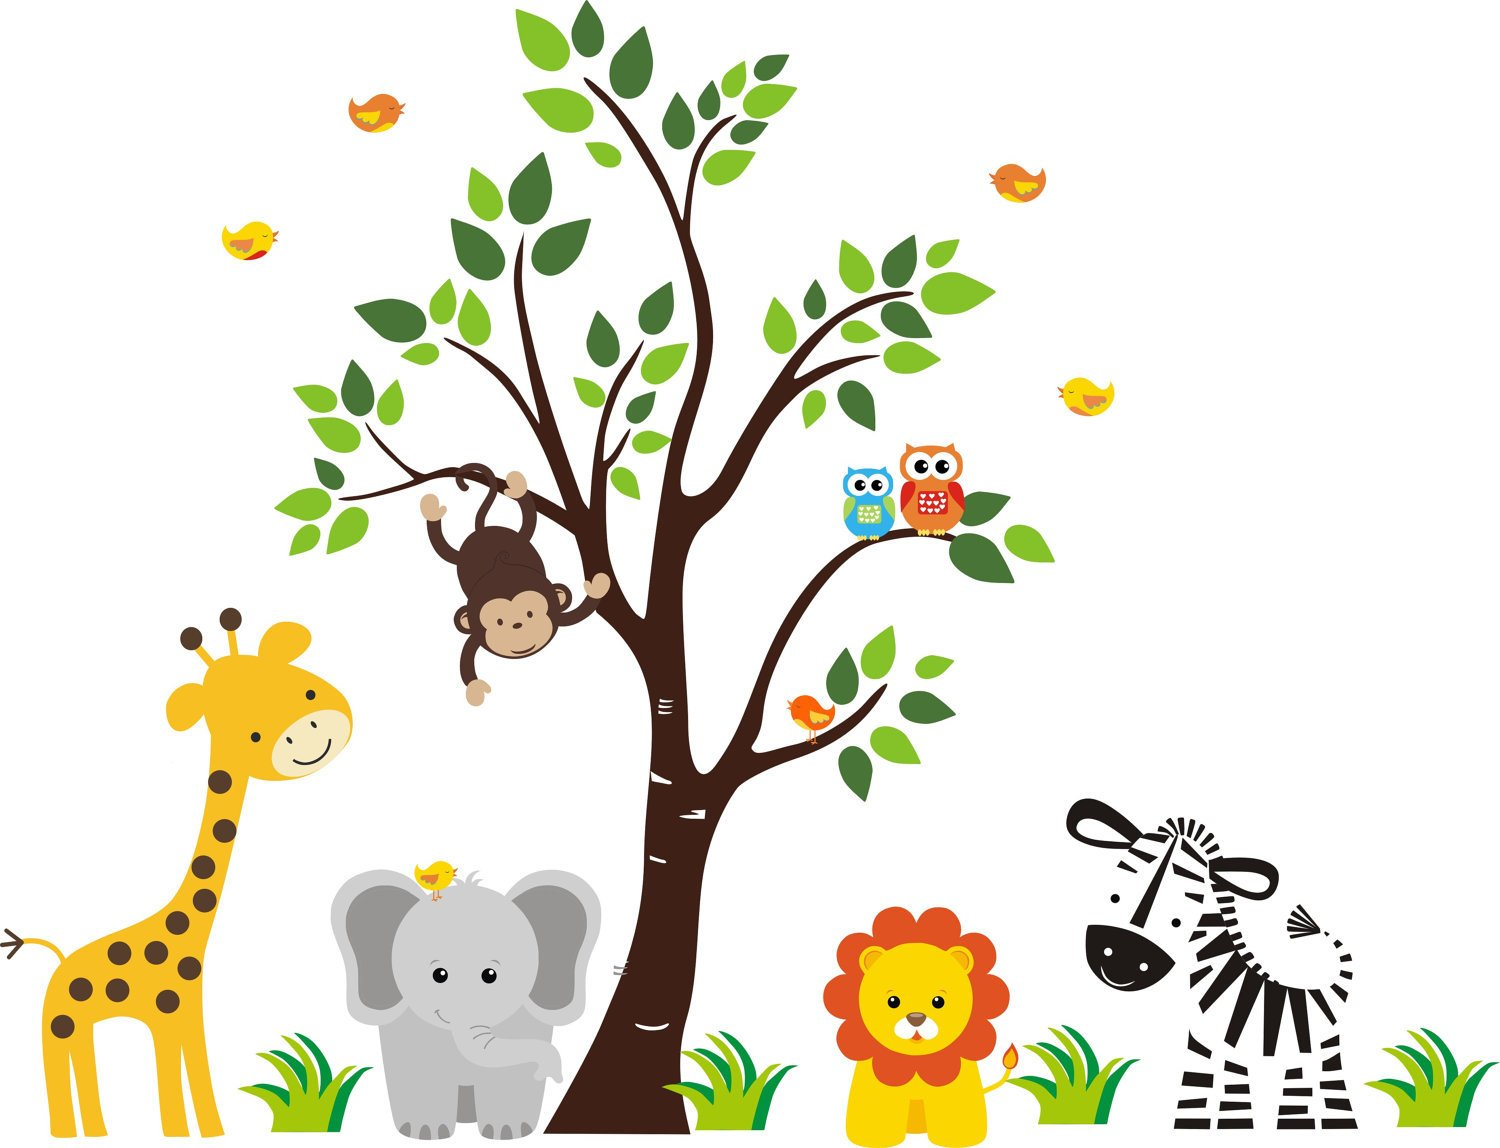 JUNGLE SAFARI ANIMALS Baby Shower Idea Birthday Party Edible Frosting Image 1/2 sheet Cake Topper by A Birthday Place (Image #1)